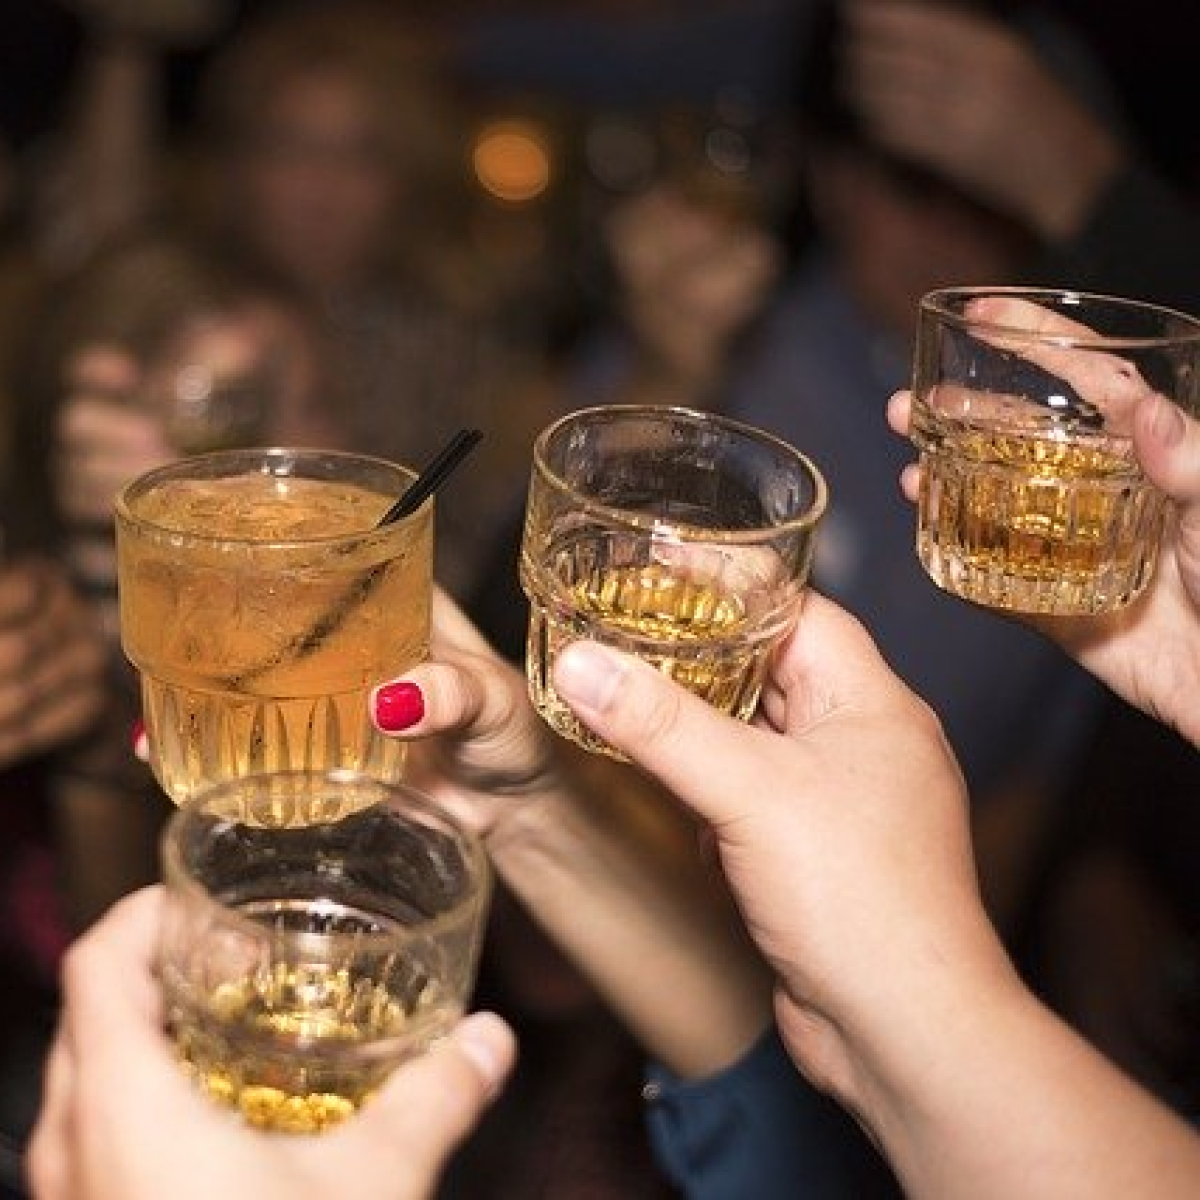 'Delhi can't stop being Delhi': 31 people arrested for holding party at Playgue restaurant amid COVID-19 lockdown